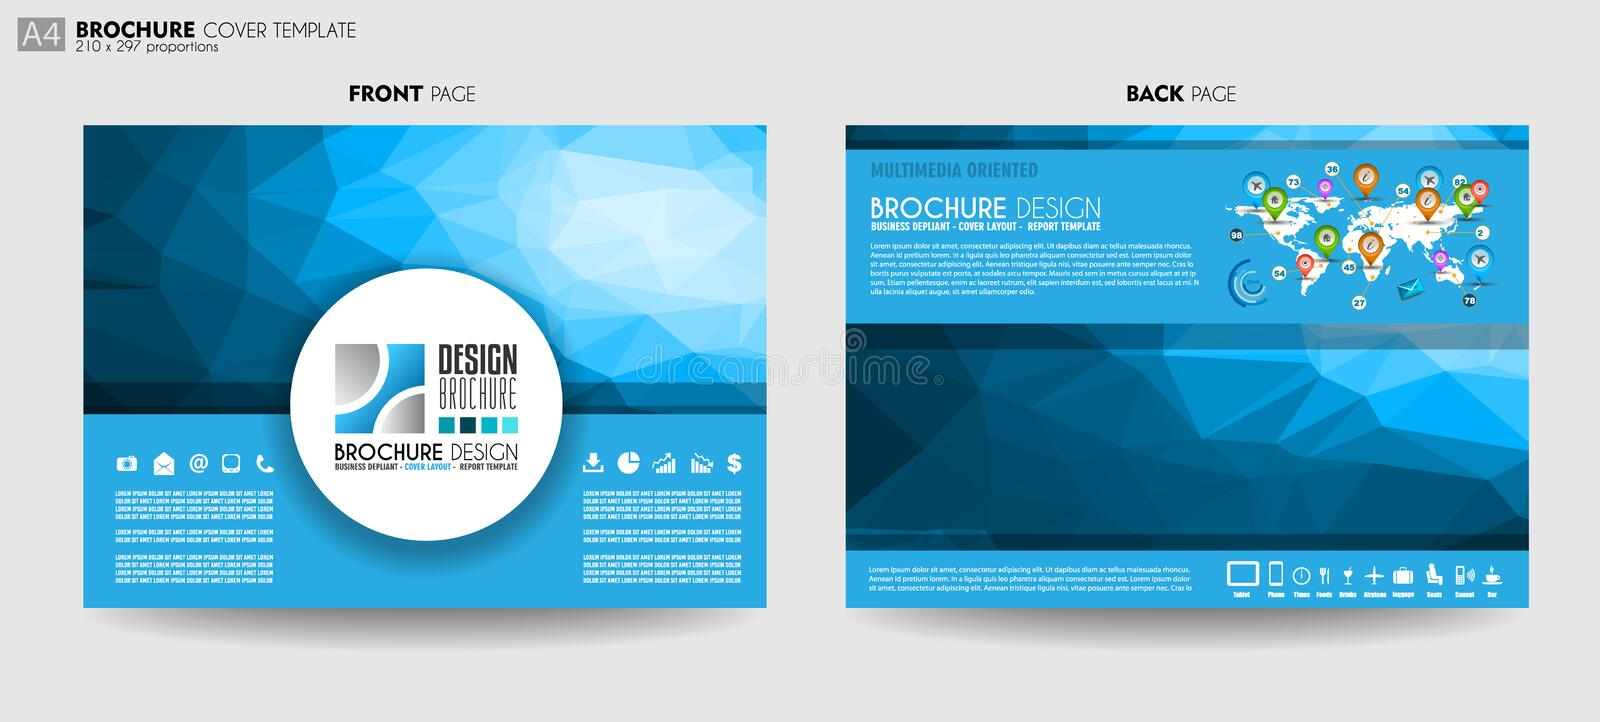 Brochure template, Flyer Design or Depliant Cover for business p vector illustration